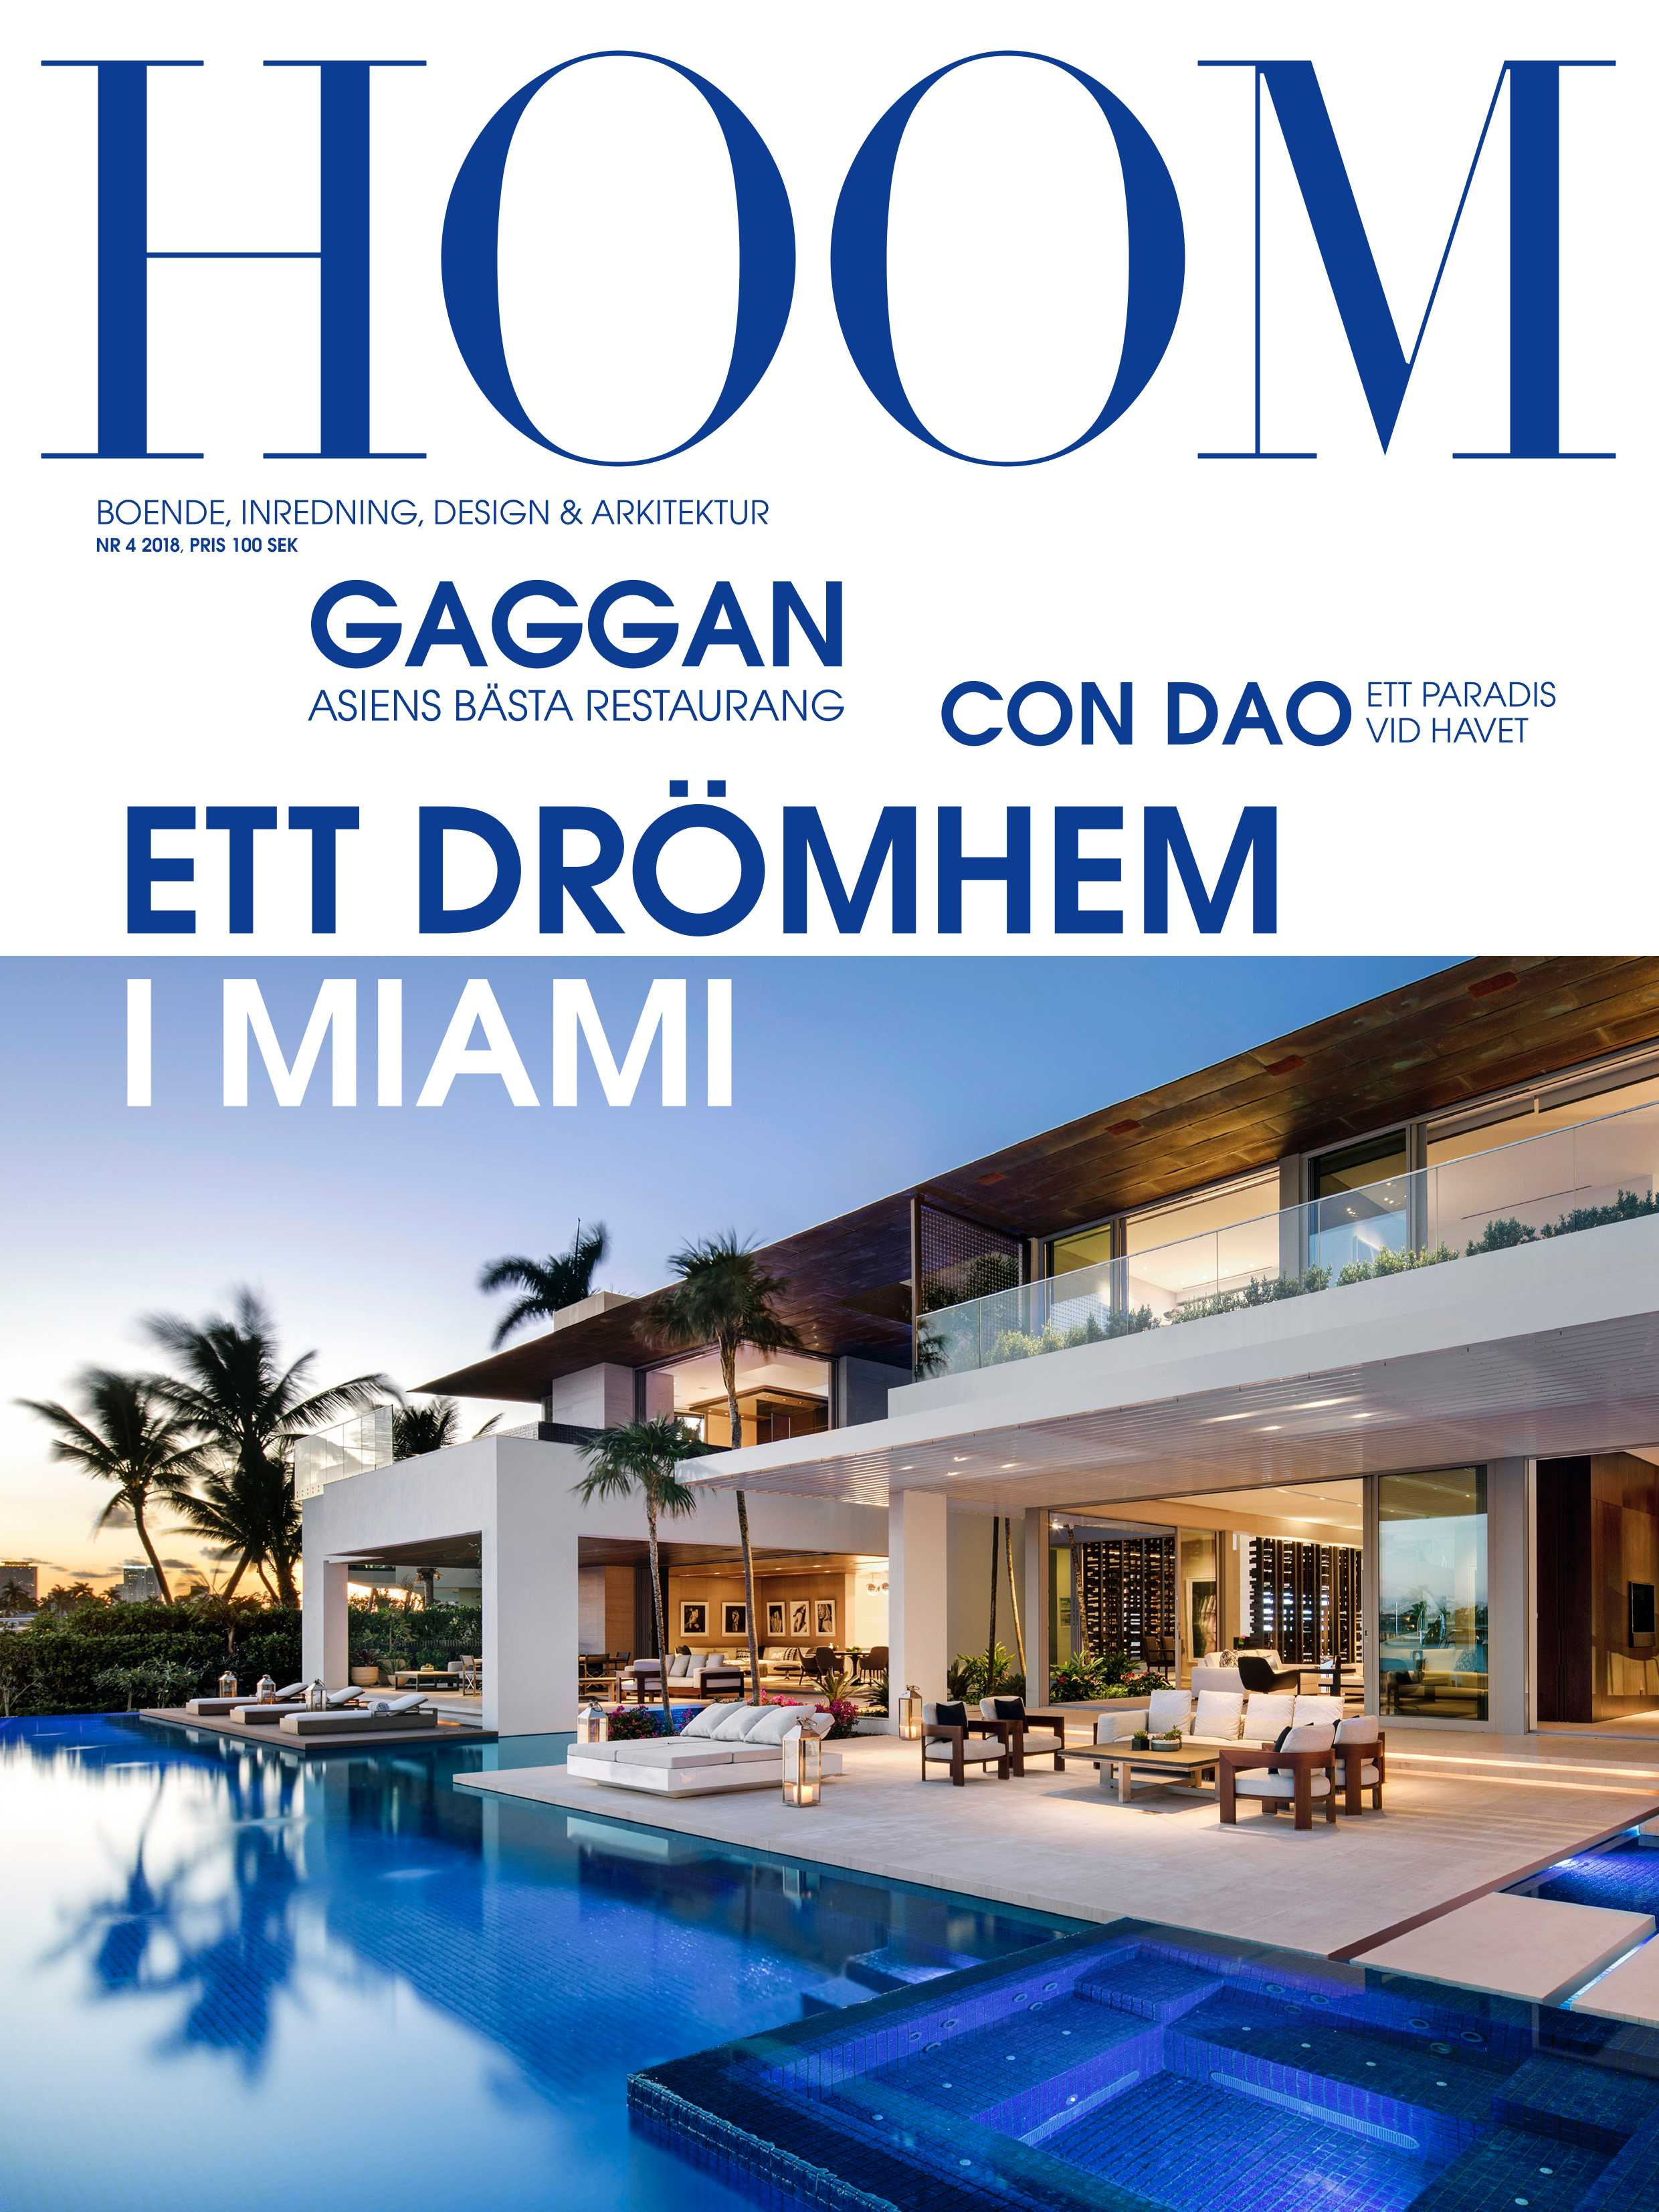 Dilido, Miami in HOOM